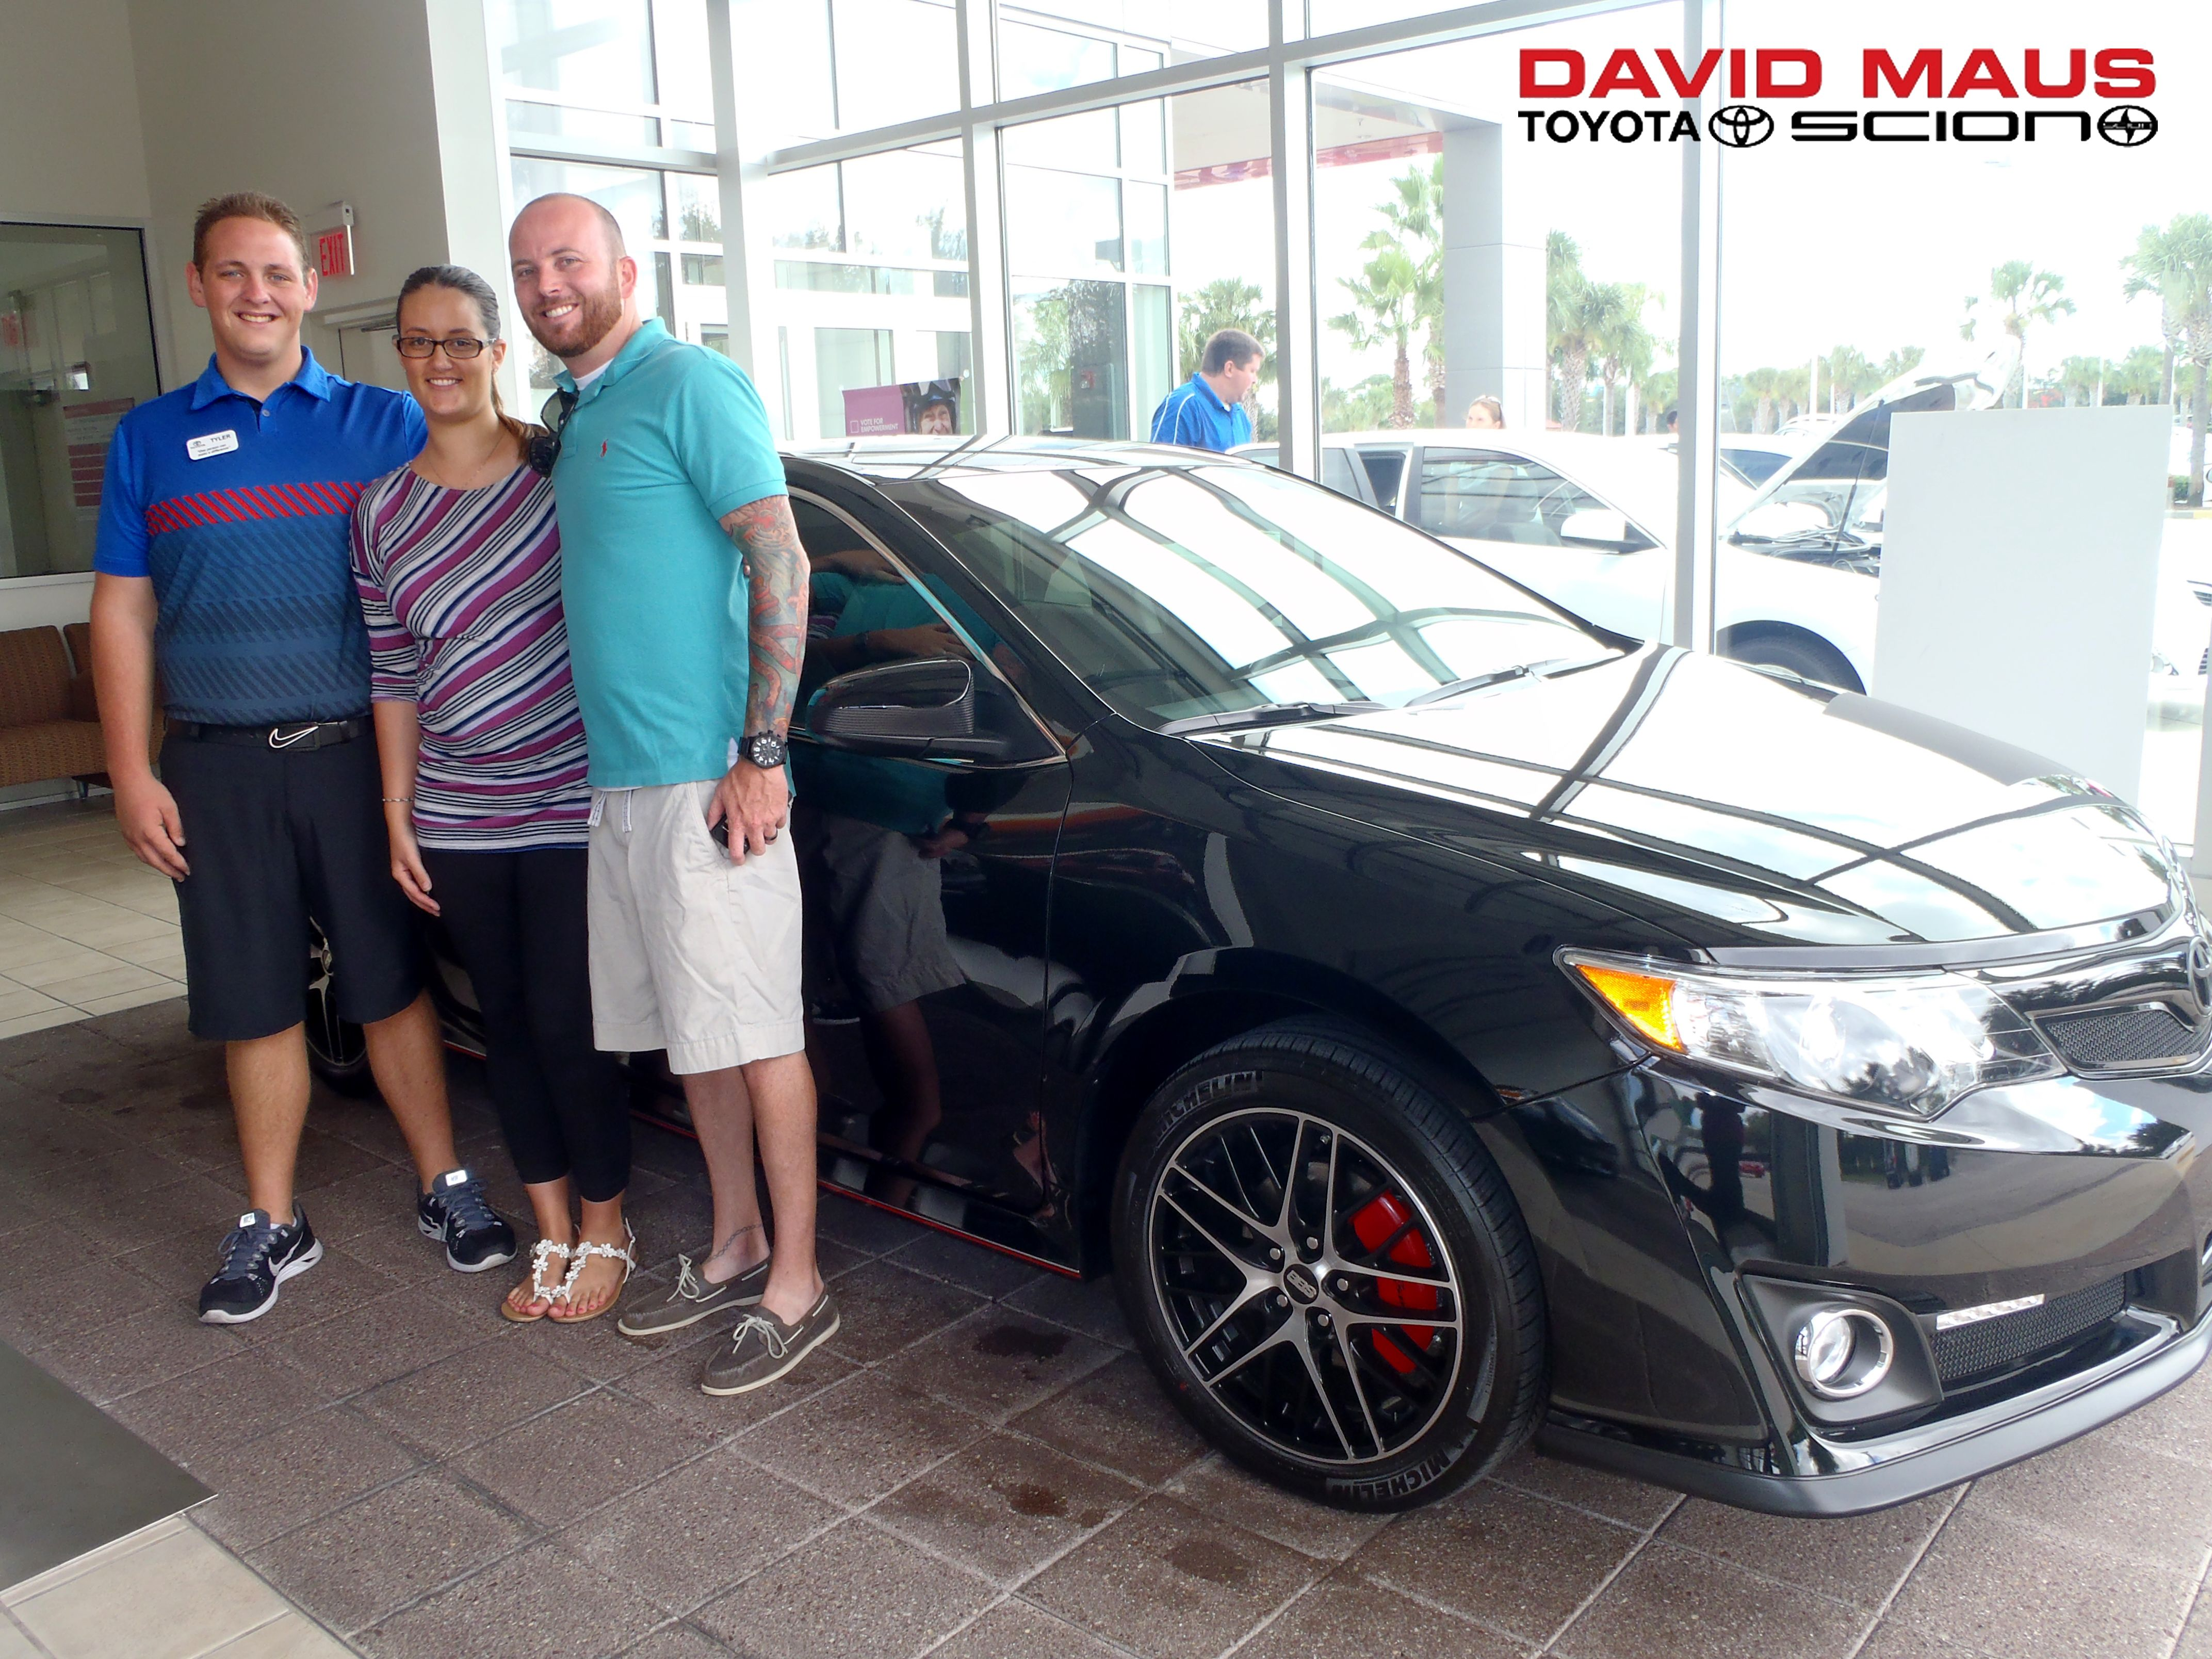 Chris and Alexa with their new #Toyota #Camry! Welcome to the #DavidMaus #family! #WhateverItTakes